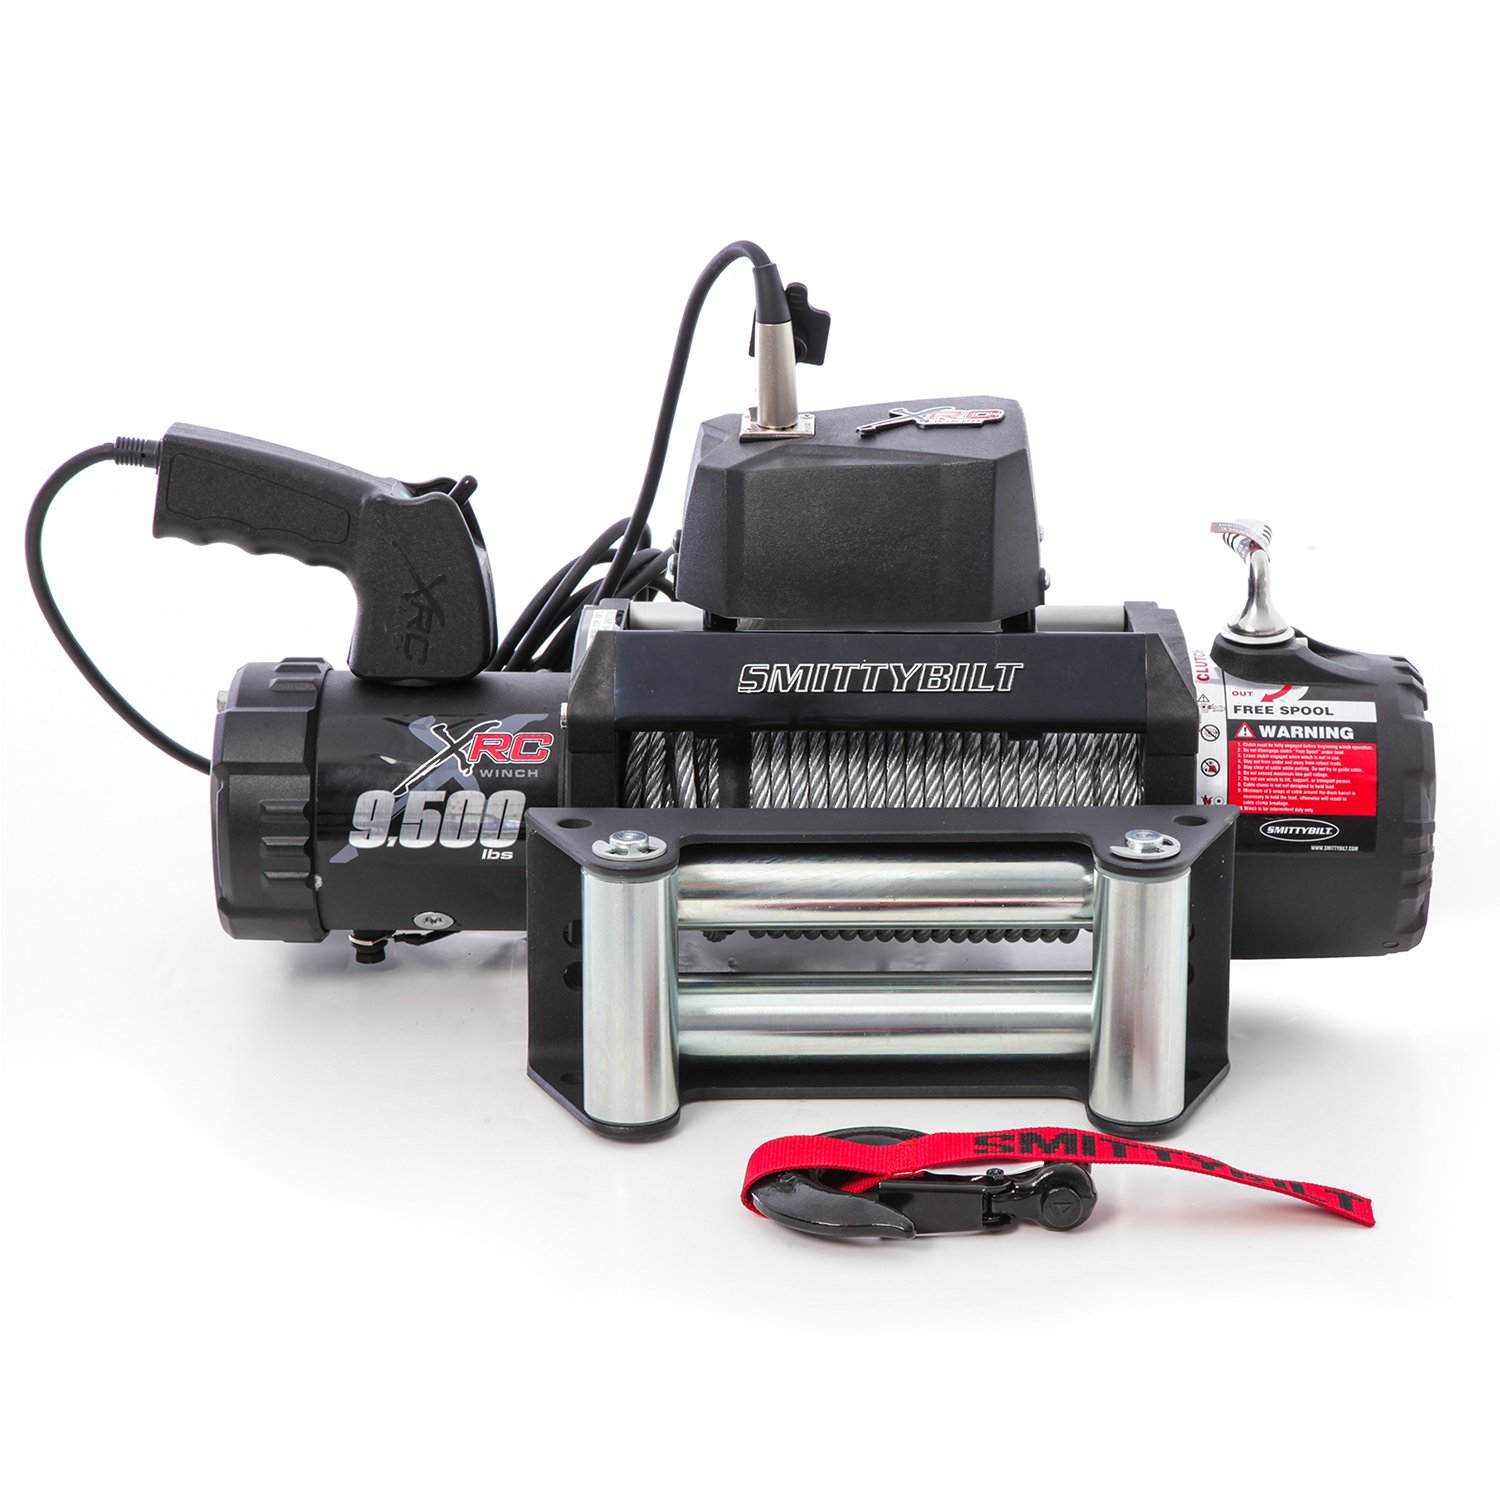 71GZqL ZeFL._SL1500_ amazon com pulling & lifting material handling products Portable Electric Winch 110V at readyjetset.co